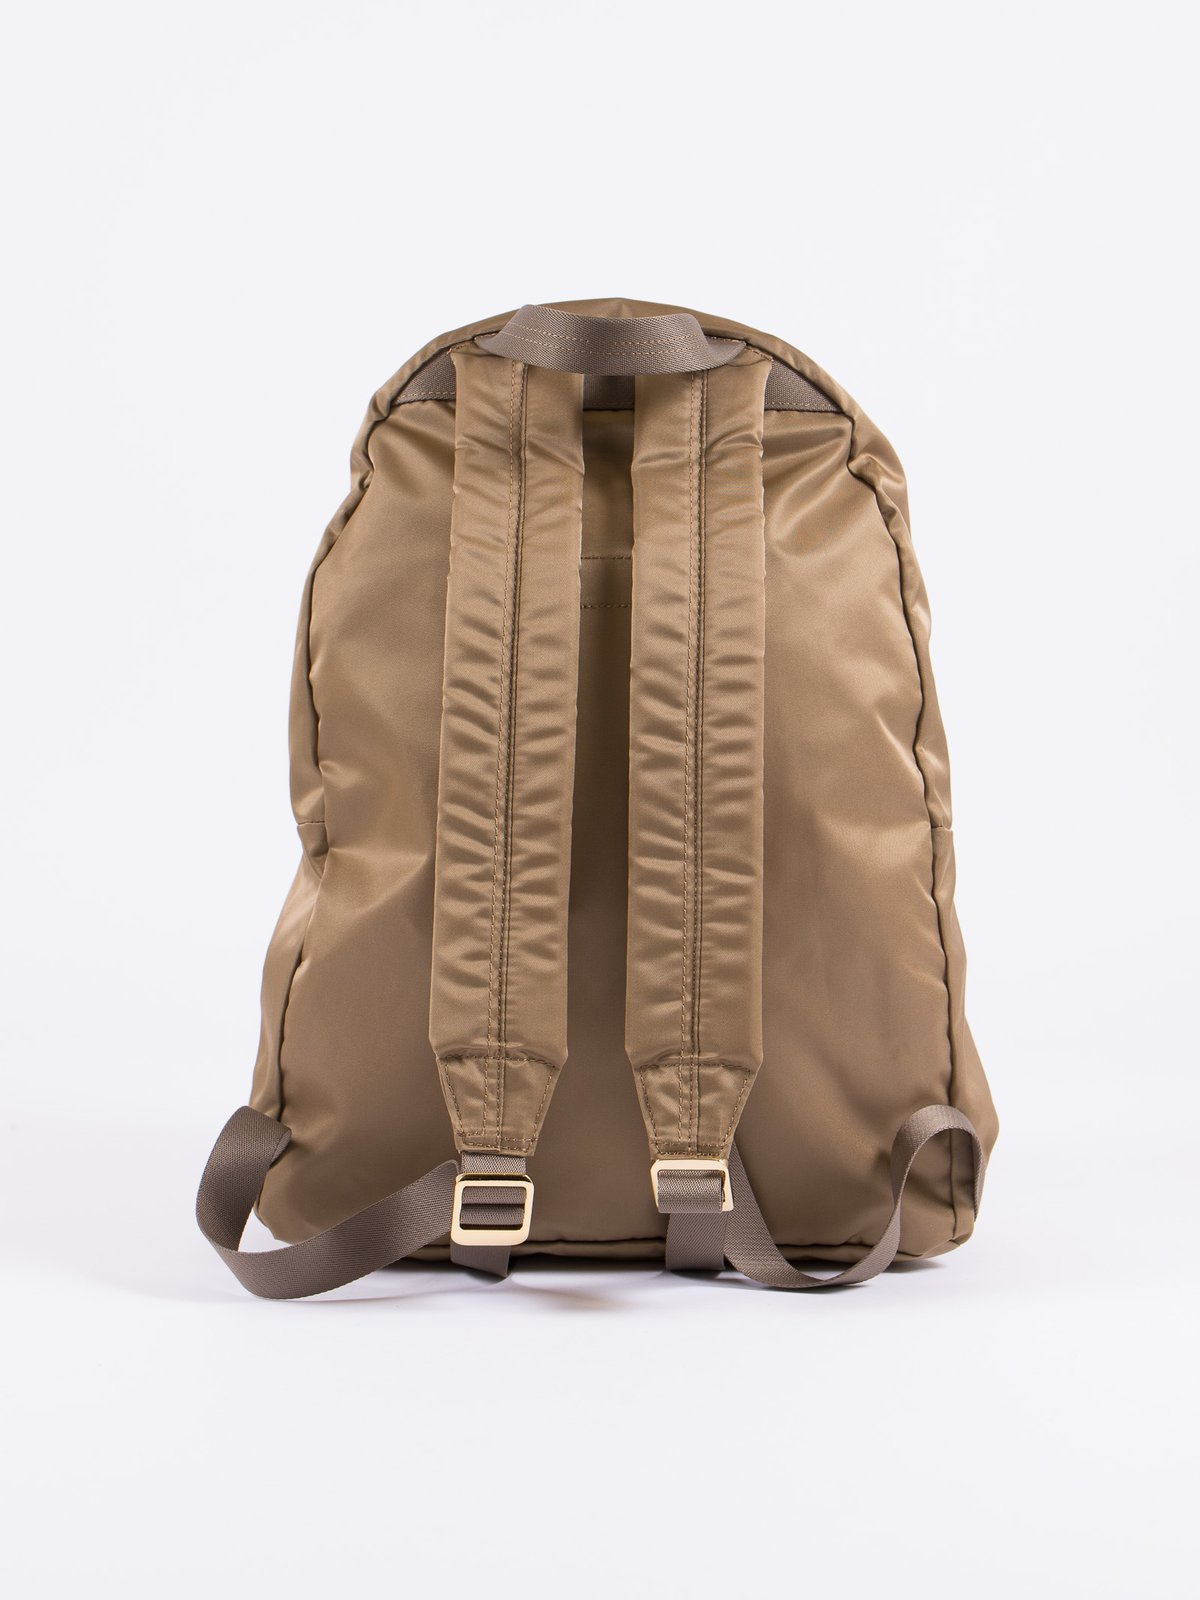 Beige OE Arrow Packable Day Pack - Image 2